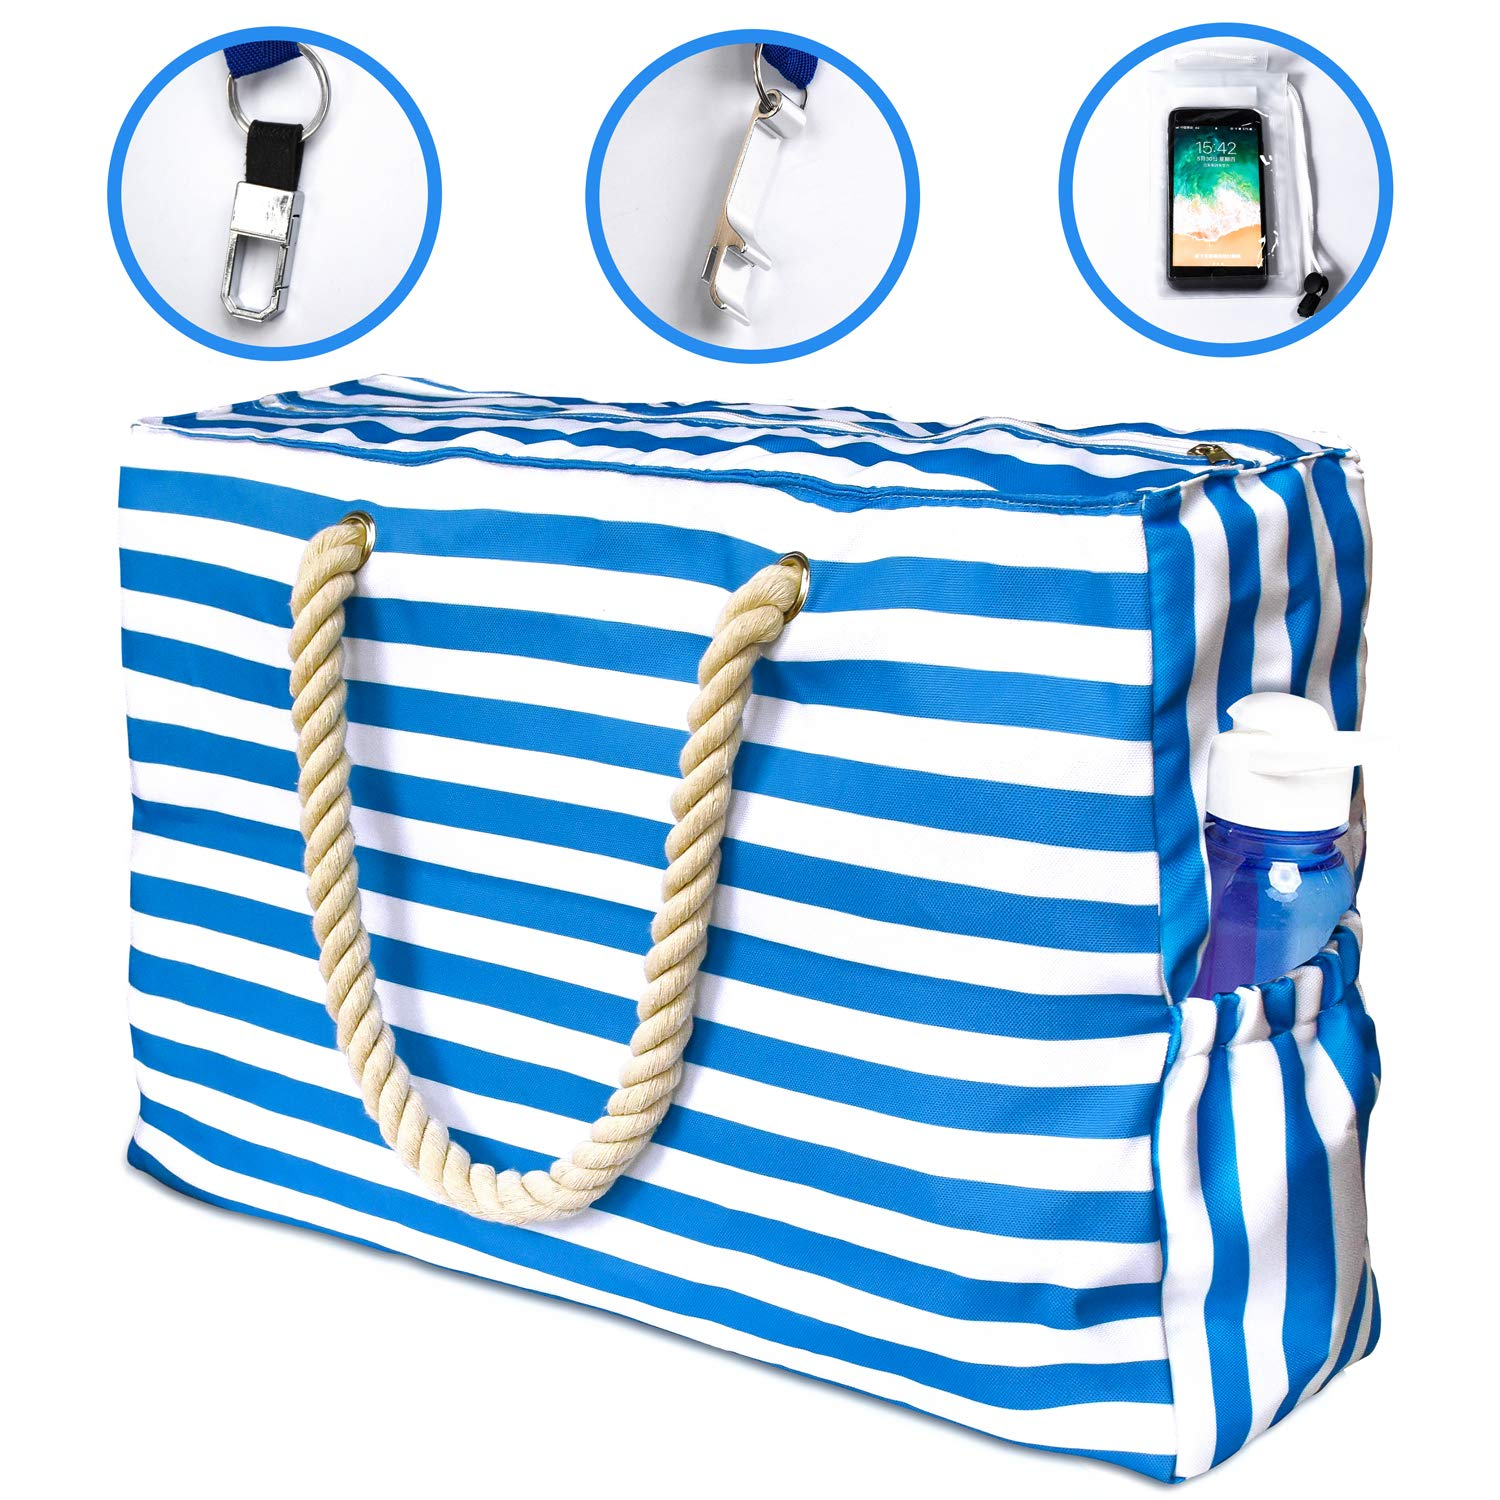 Extra Large Beach Tote Bag, XL Beach Bags and Totes with Cotton Rope Handles, Two Outside Pockets, Zipper Internal Pockets, Waterproof Phone Pouch, Built-In Key Holder Bottle Opener Blue White